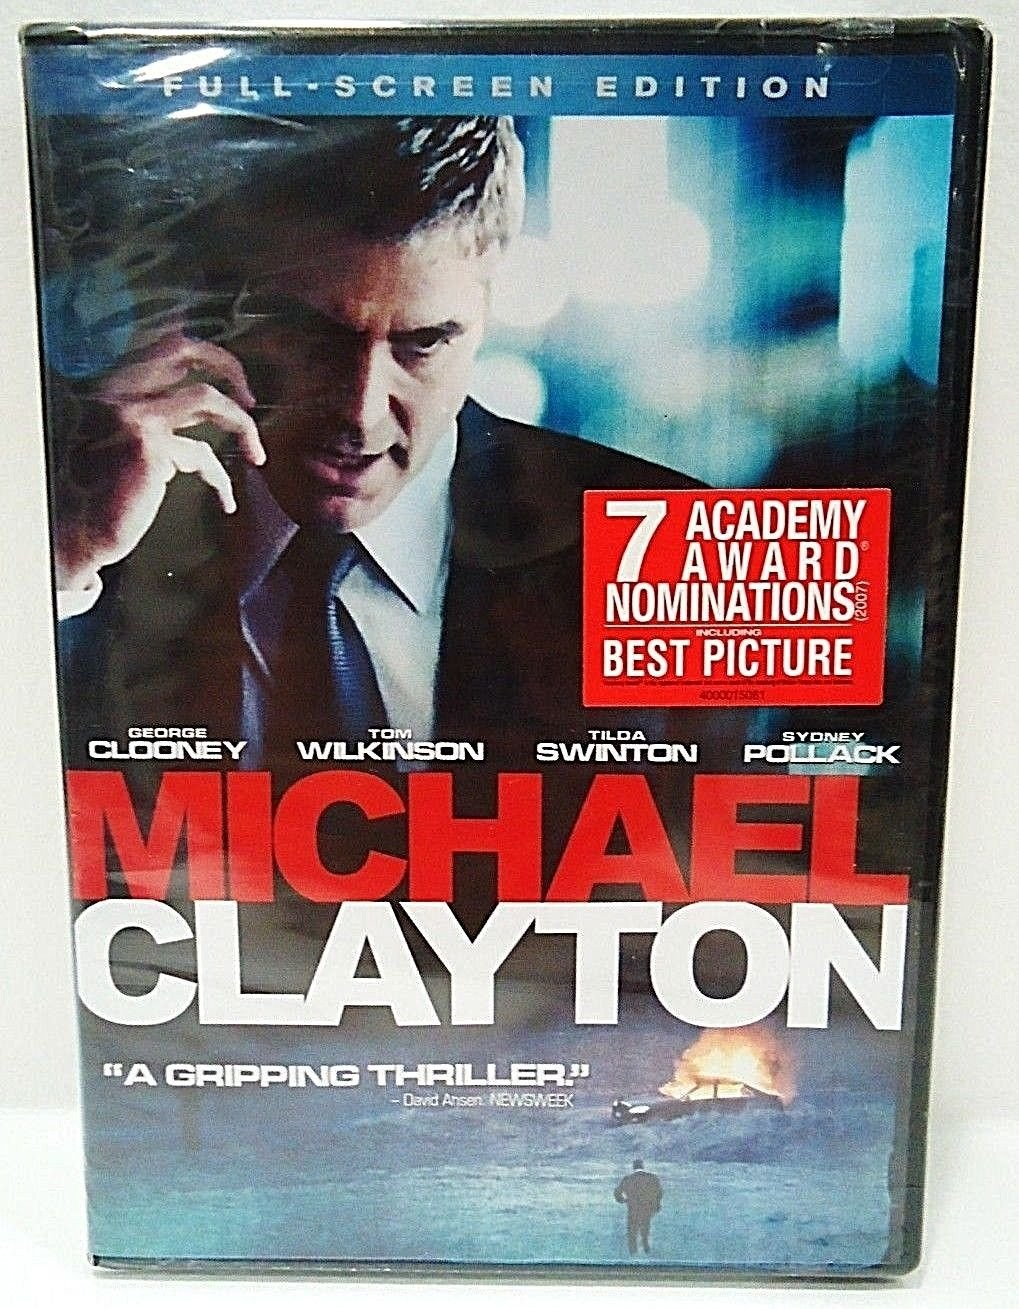 MICHAEL CLAYTON - DVD - GEORGE CLOONEY - BRAND NEW - SEALED - THE FIRM - MOVIE